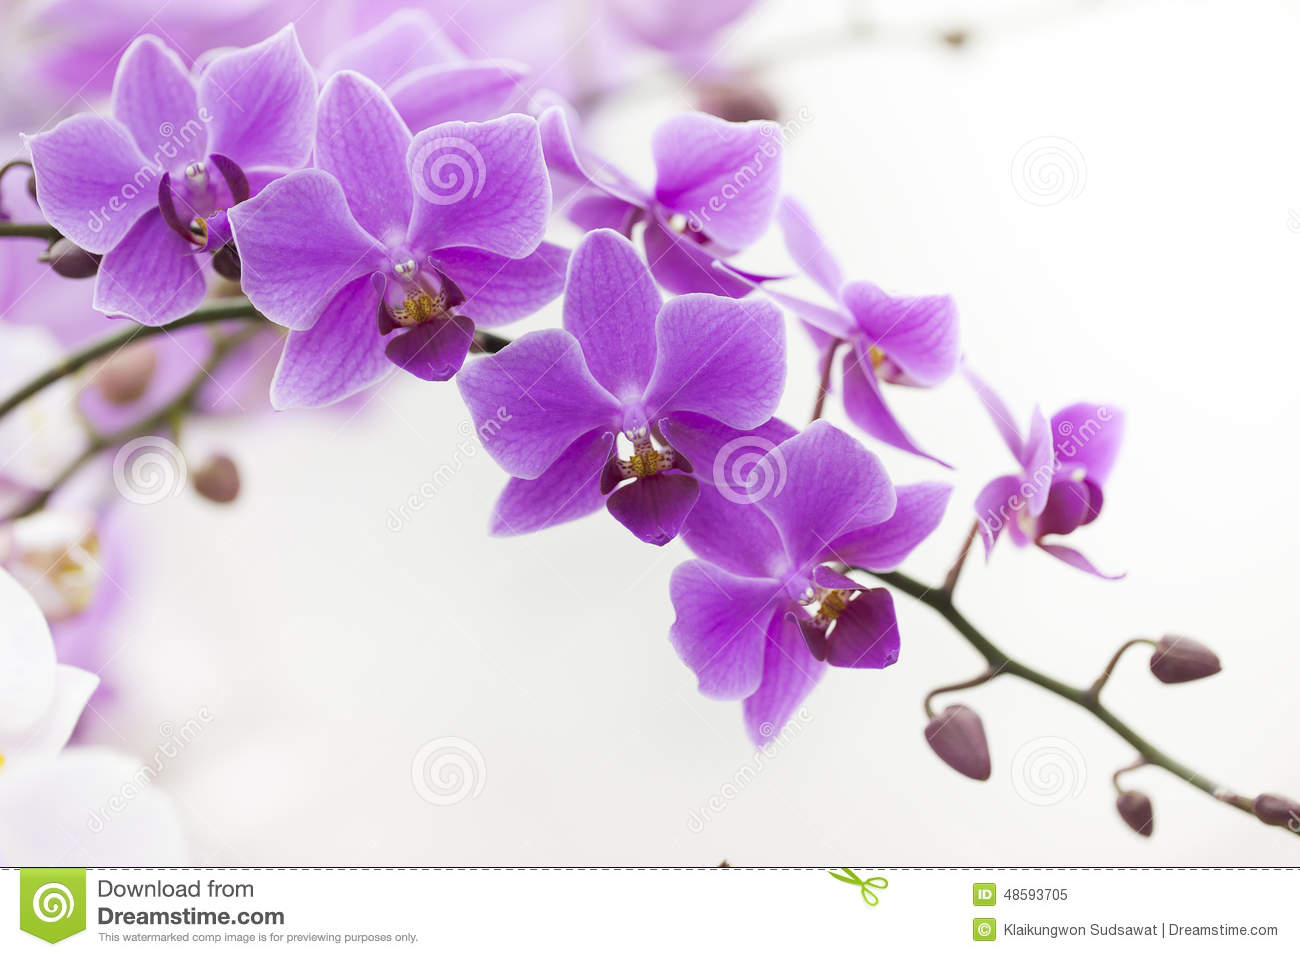 habrumalas: Purple Dendrobium Orchids Images.